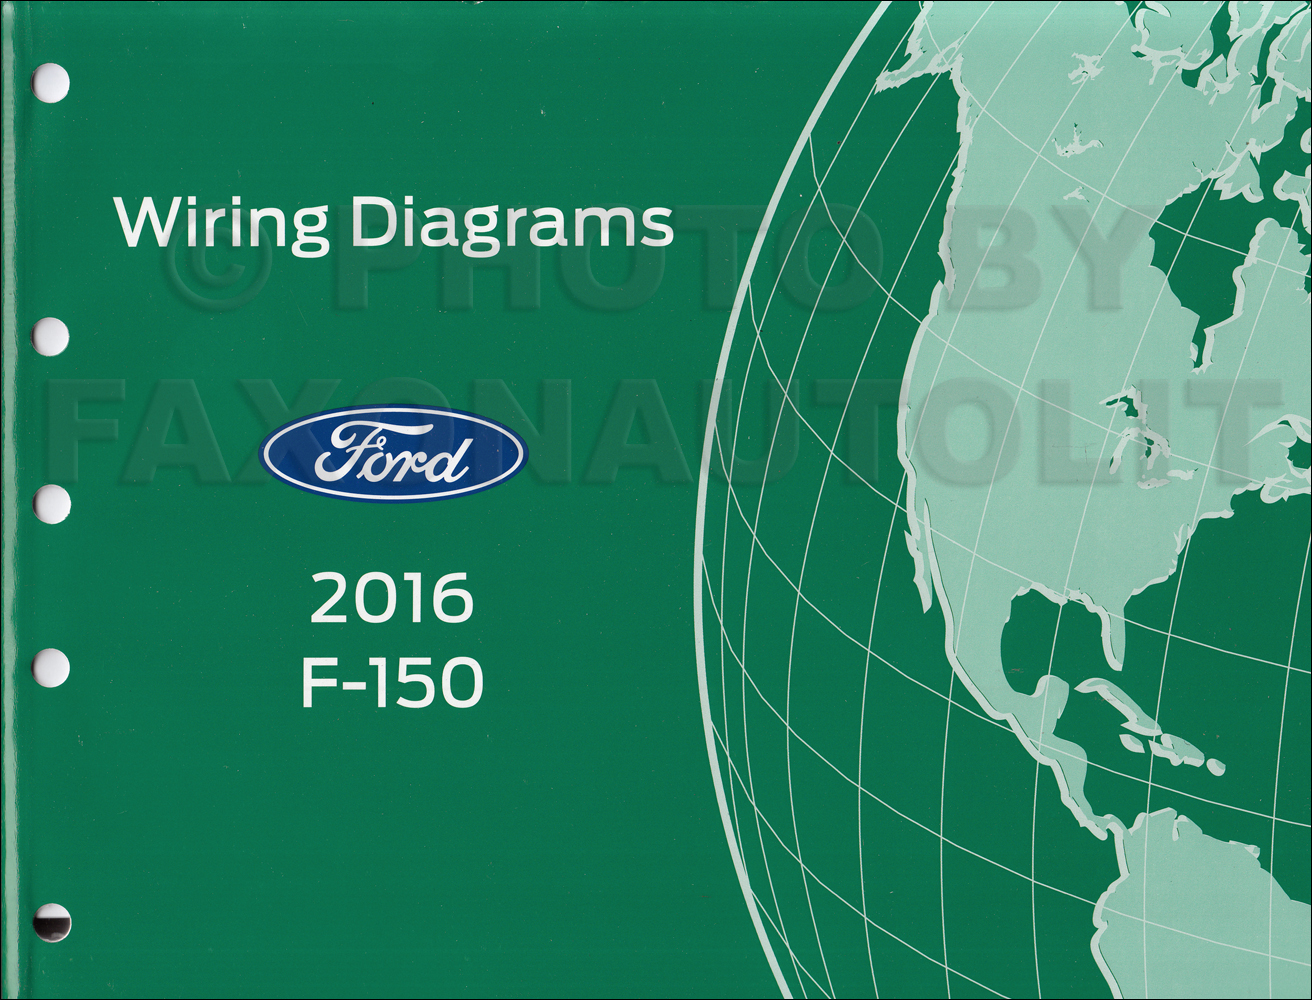 150 Wiring Diagram 1998 Ford F 150 Wiring Diagram Auto Wiring